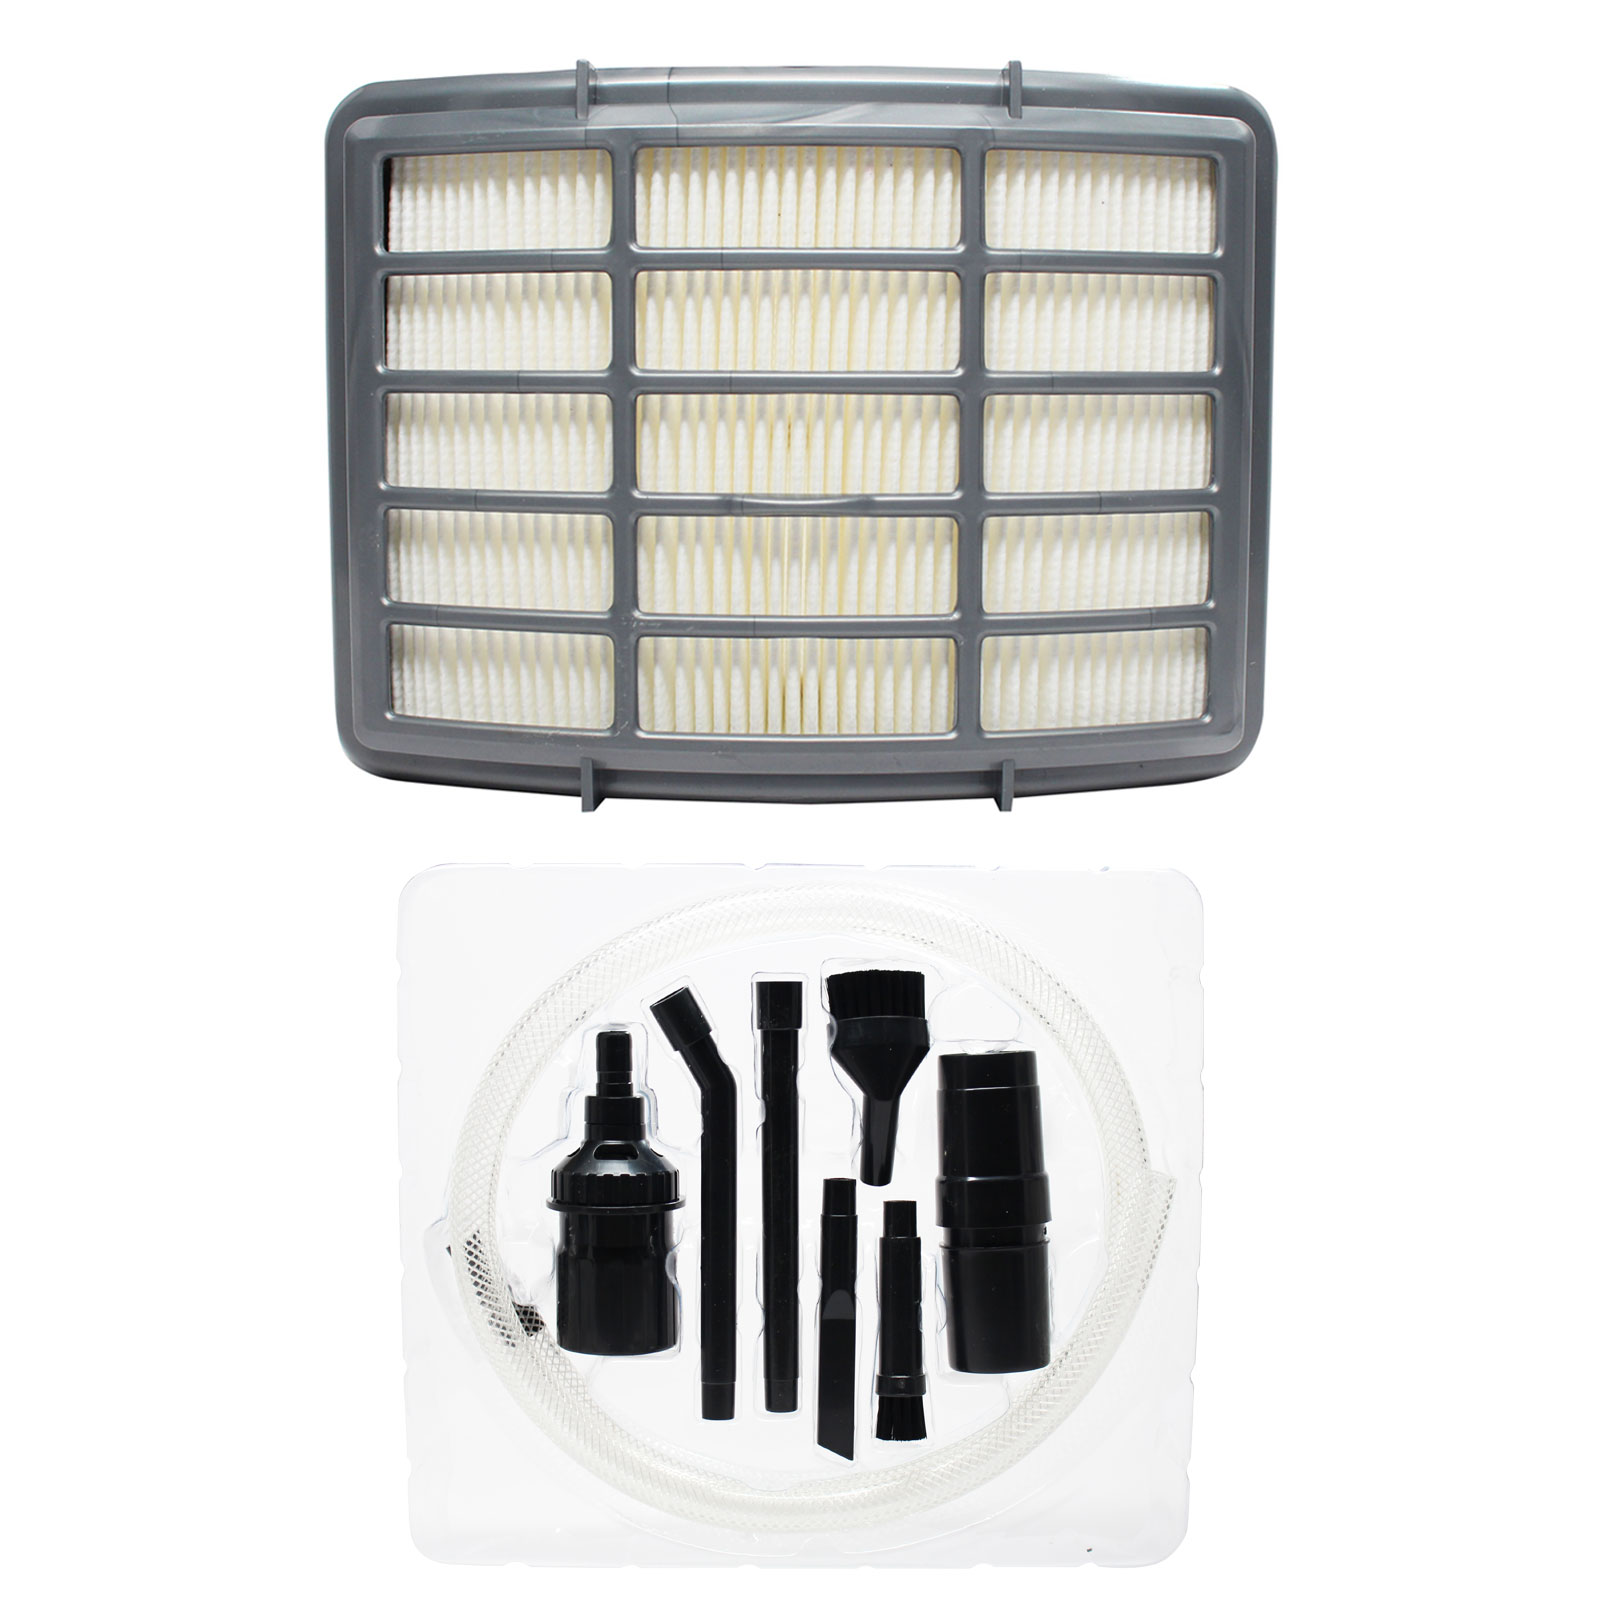 Replacement Shark Shark Navigator Lift-Away NV350 Vacuum HEPA Filter with 7-Piece Micro Vacuum Attachment Kit - Compatible Shark XHF350 HEPA Filter